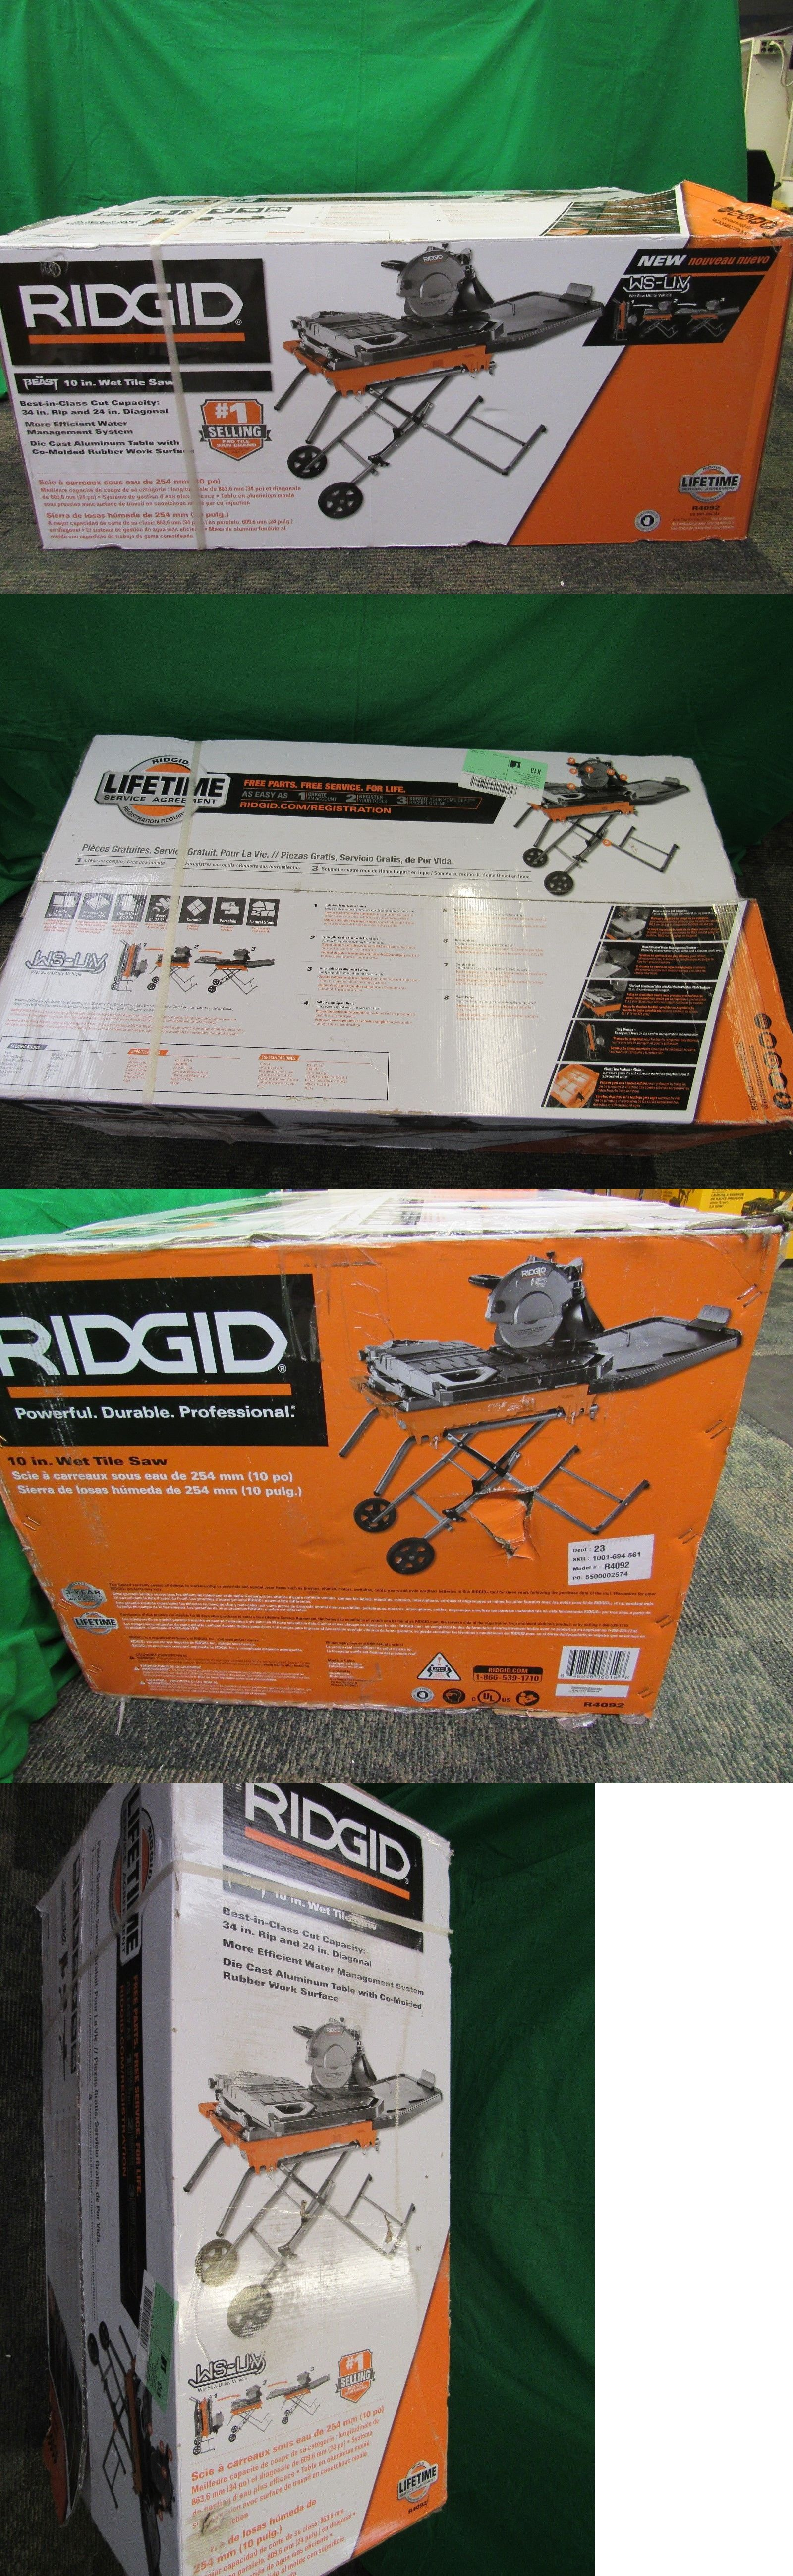 Tile Saws 122836 Ridgid R4092 The Beast 10 Wet Tile Saw With Stand Brand New Buy It Now Only 459 99 On Ebay Ridgid Beast Sta Tile Saw Wet Tile Saws